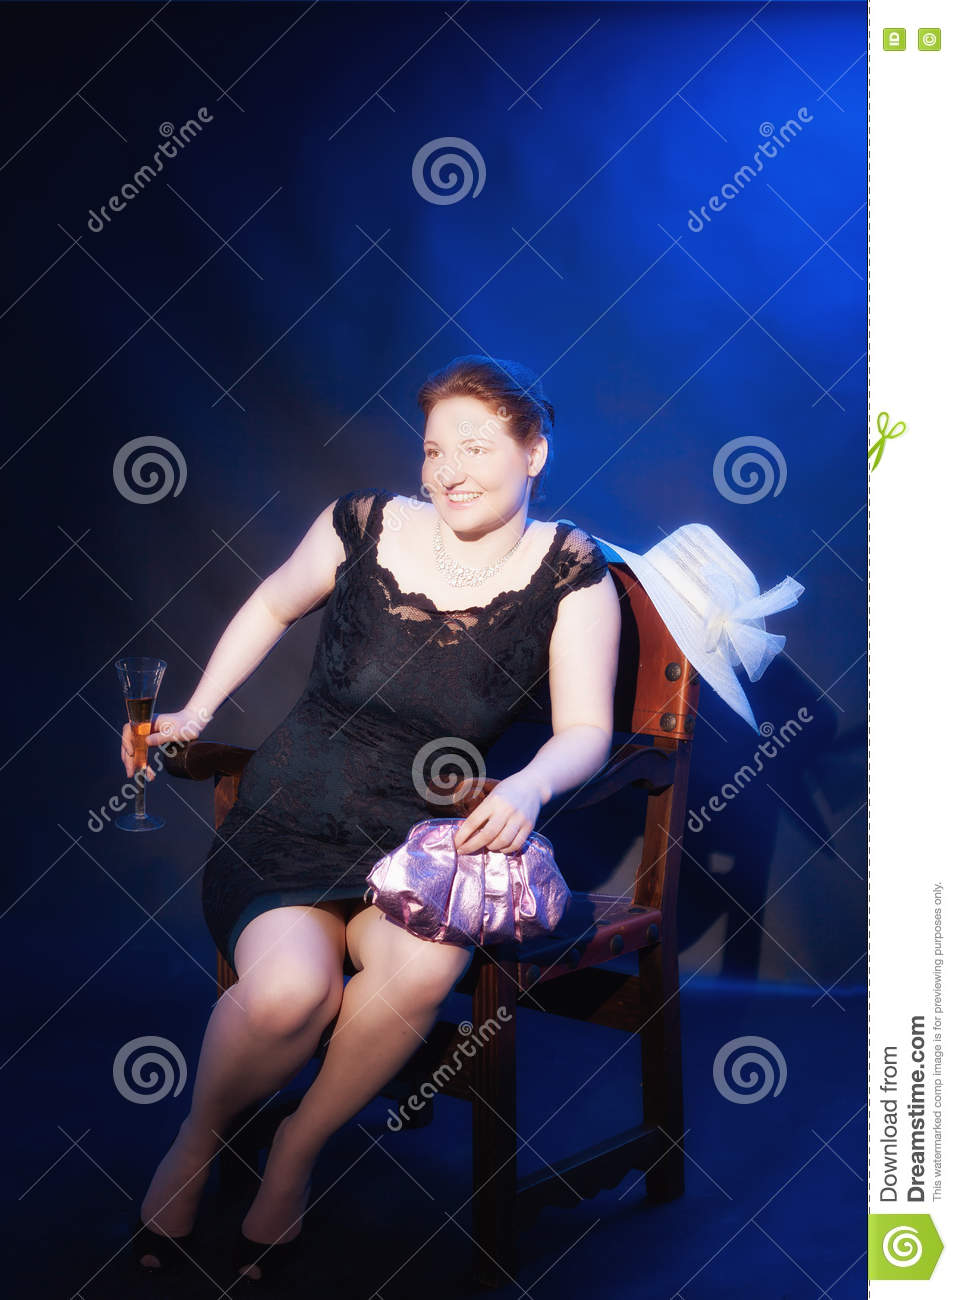 Elegant redhead fat lady in an evening gown, sitting in an old, noble,  Spanish wooden chair. Studio recording with blue background